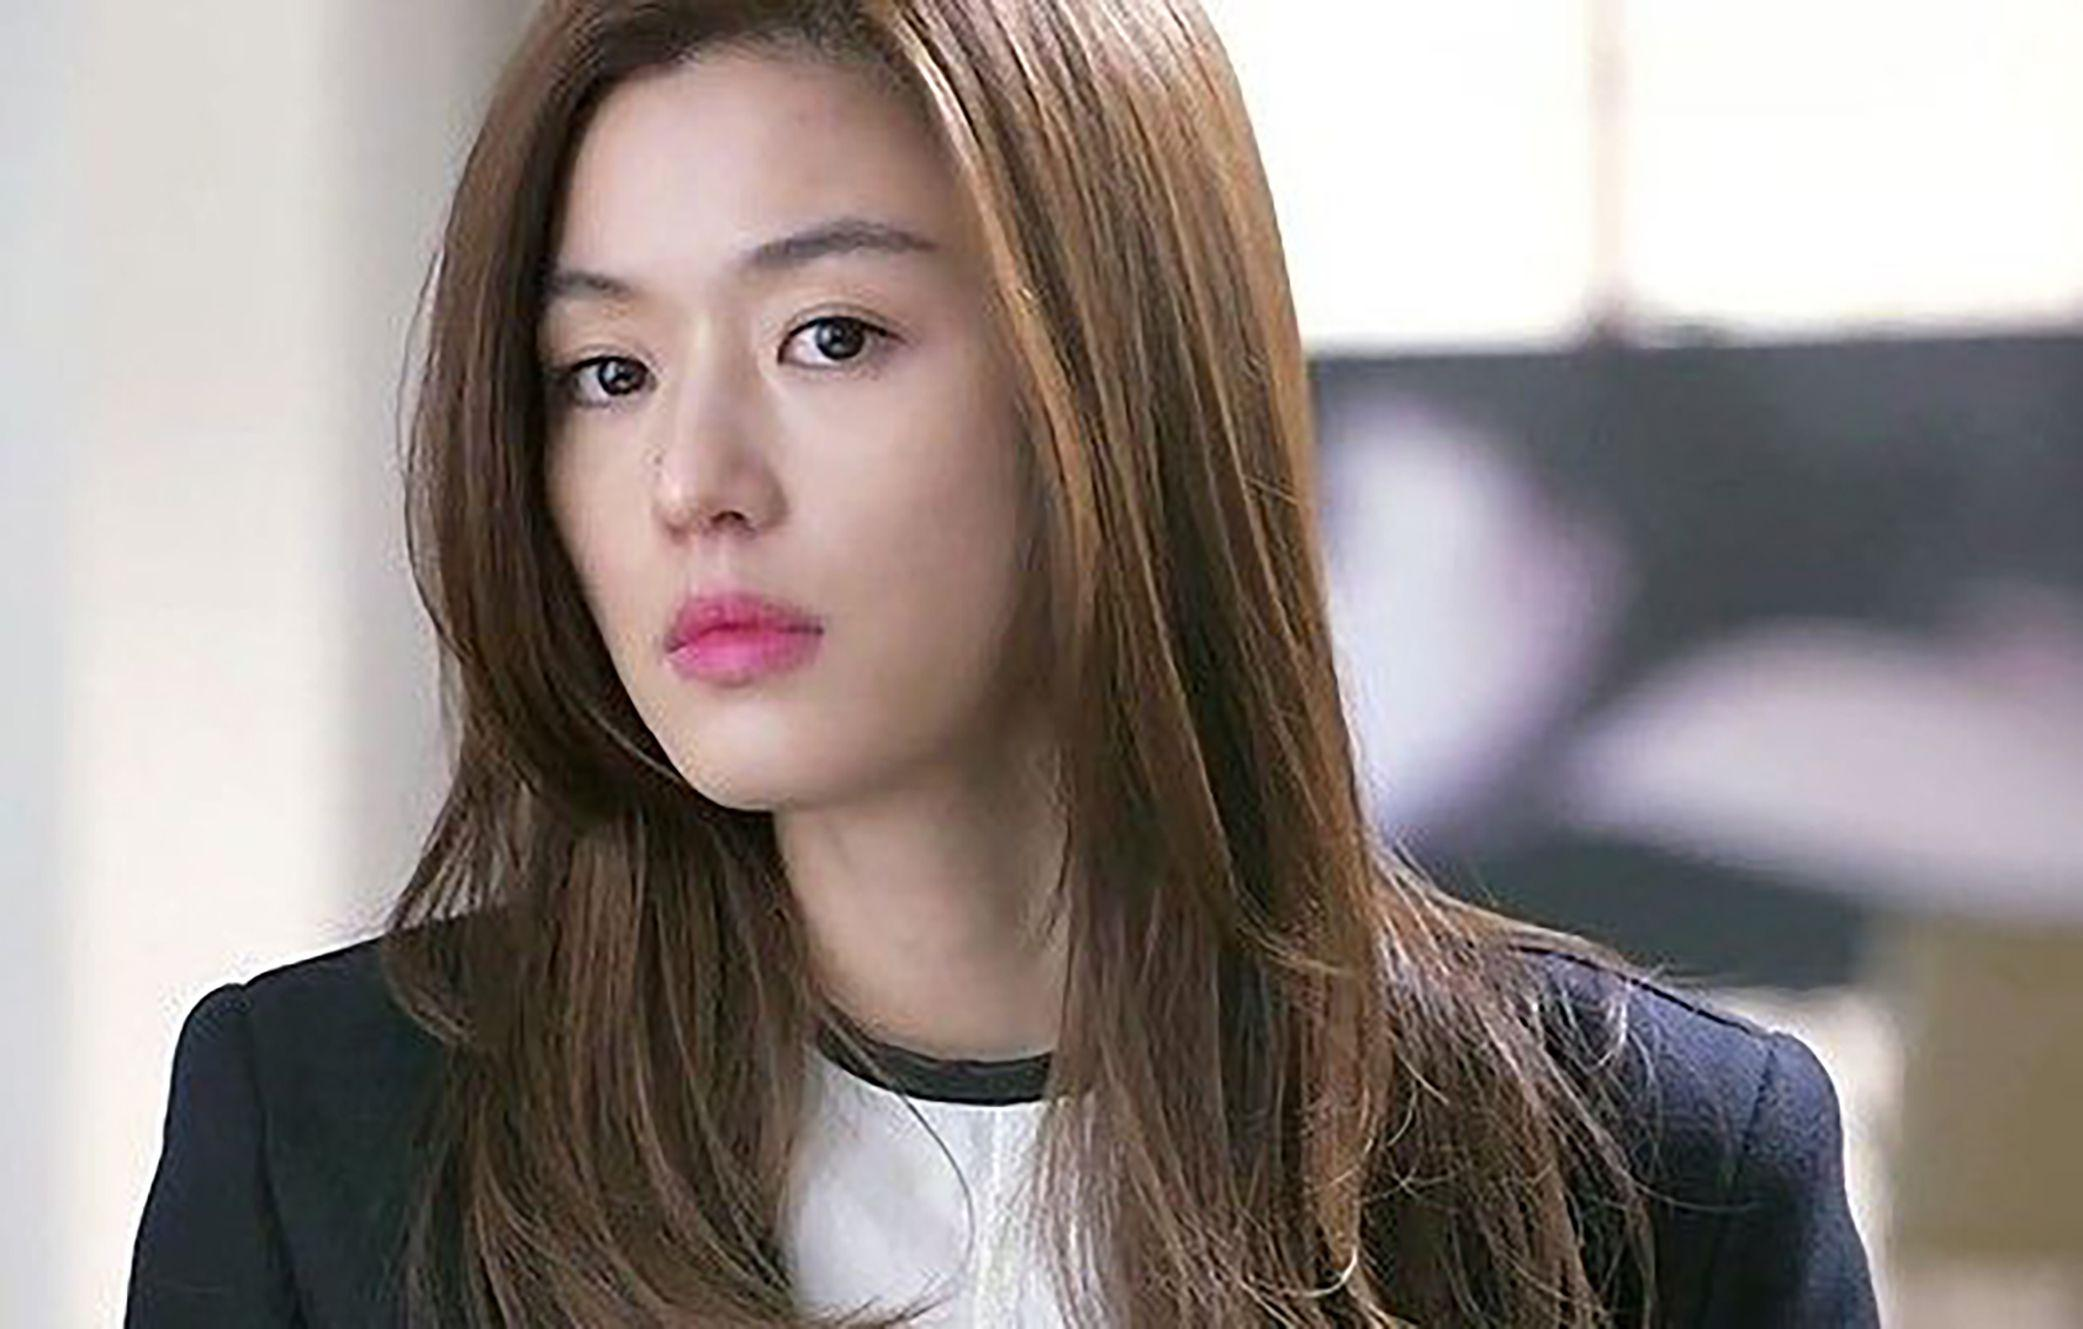 Jun Ji-hyun Showed Her Elegance and Sexiness in New